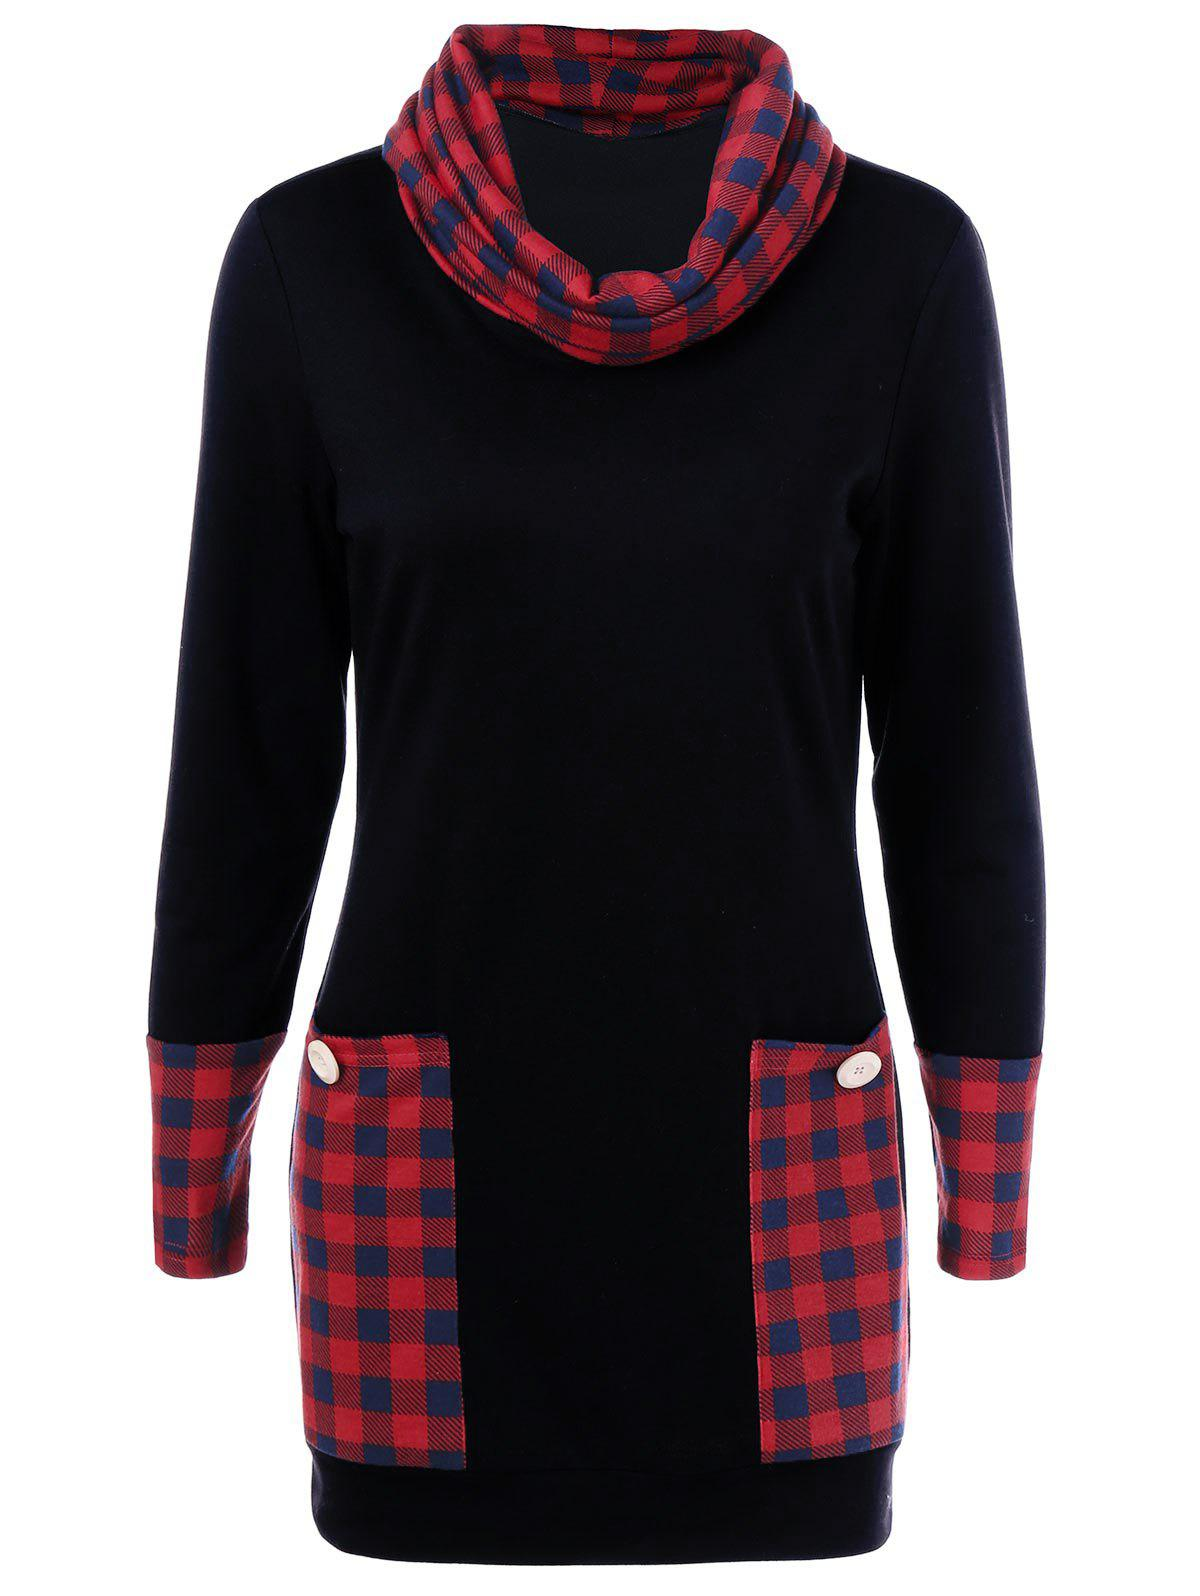 Casual Cowl Neck Plaid Trim Dress with Pockets - RED/BLACK L